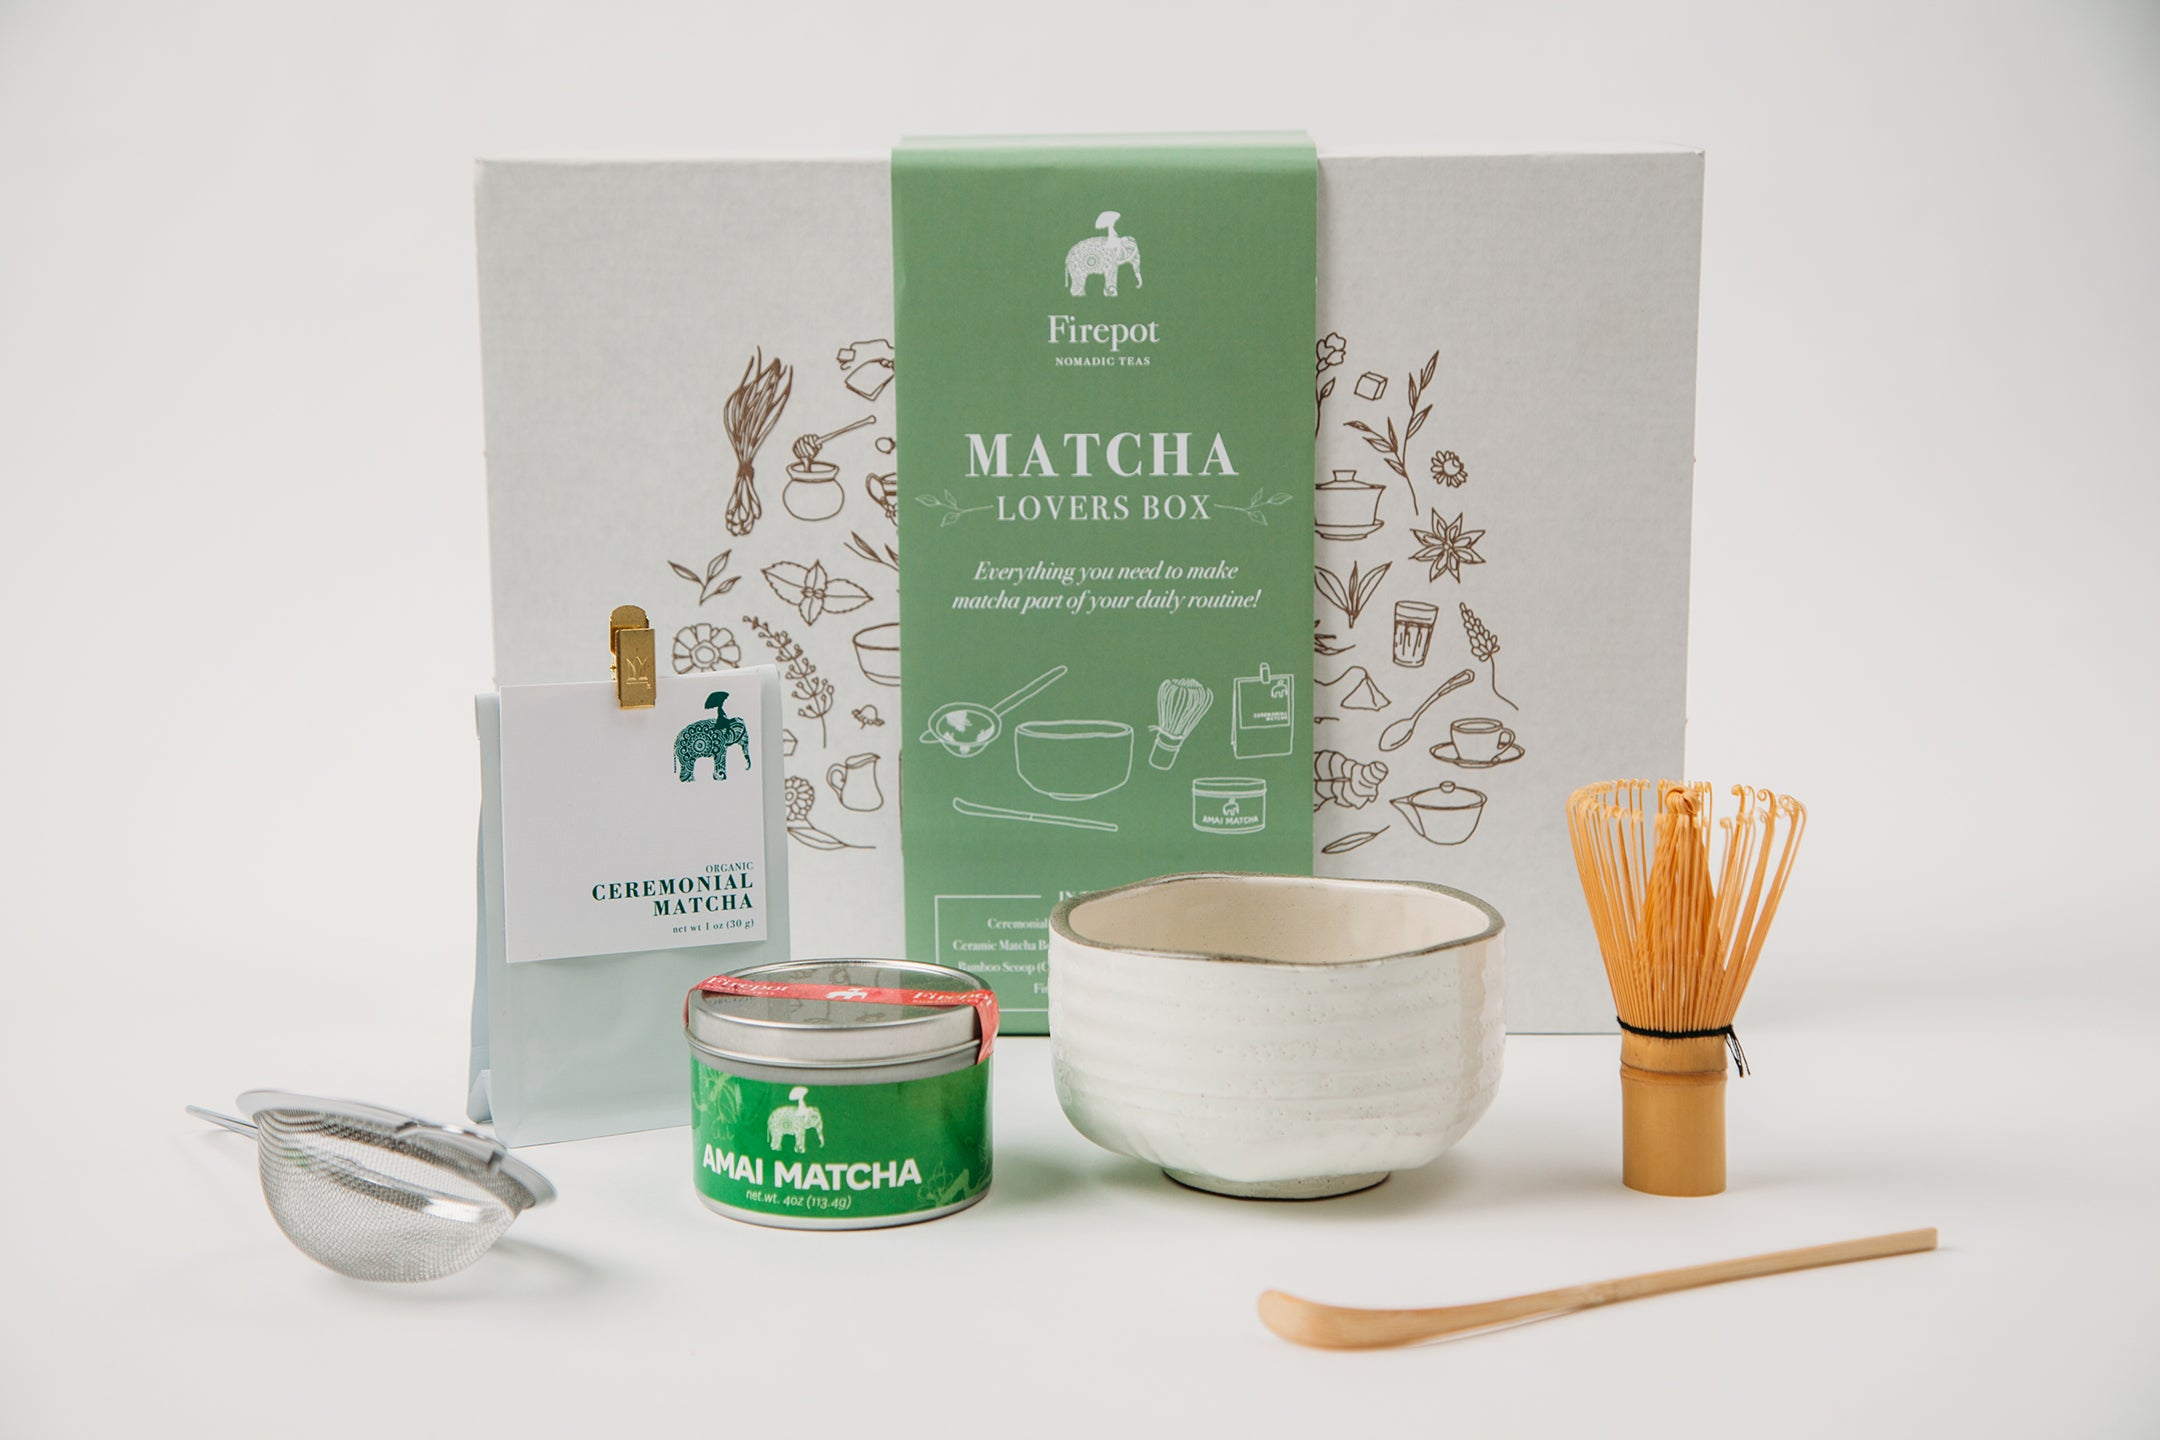 Firepot Matcha Lovers Box with Ceremonial Grade Matcha, Amai Matcha, Ceramic Matcha Bowl, Matcha Whisk, Bamboo Matcha Scoop, Stainless Steel Matcha Strainer